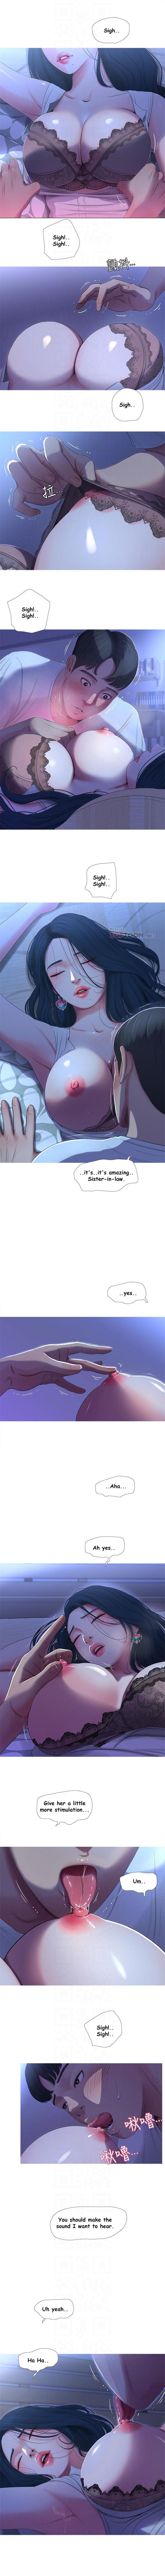 One's In-Laws Virgins Chapter 1-13 (Ongoing) [English] 50